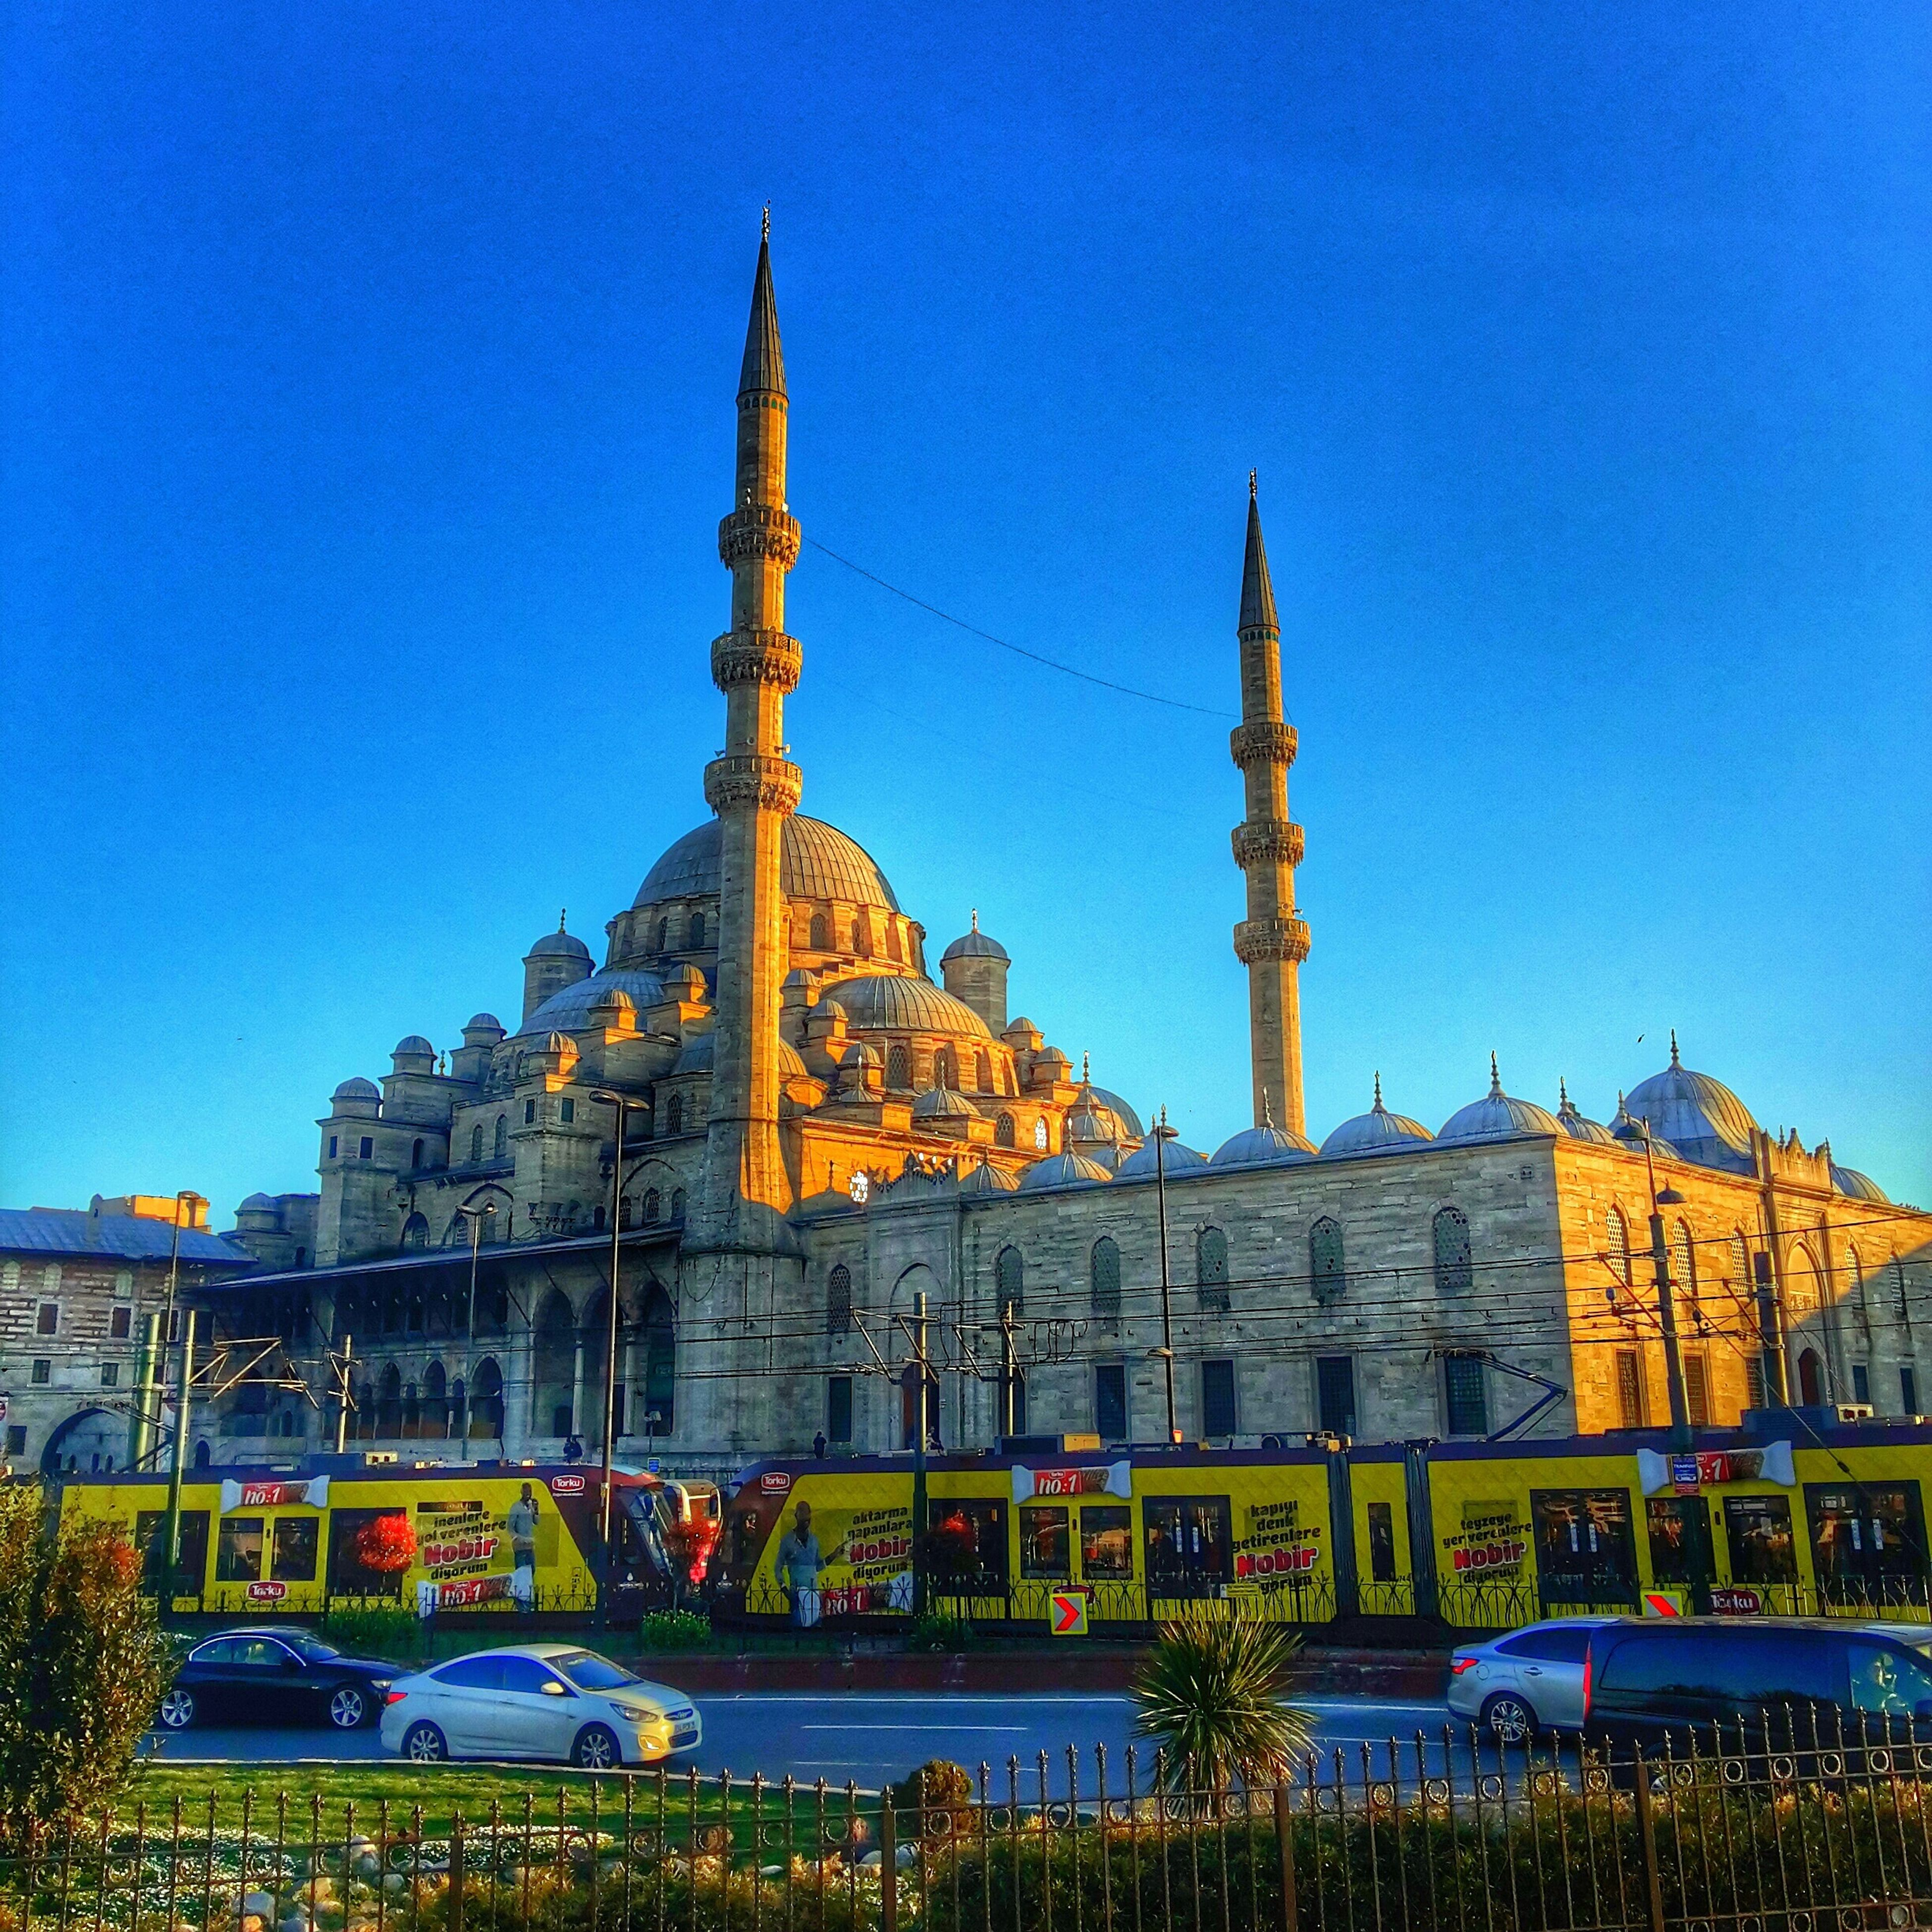 clear sky, blue, architecture, built structure, building exterior, famous place, place of worship, religion, travel destinations, copy space, travel, spirituality, international landmark, tourism, capital cities, low angle view, dome, history, church